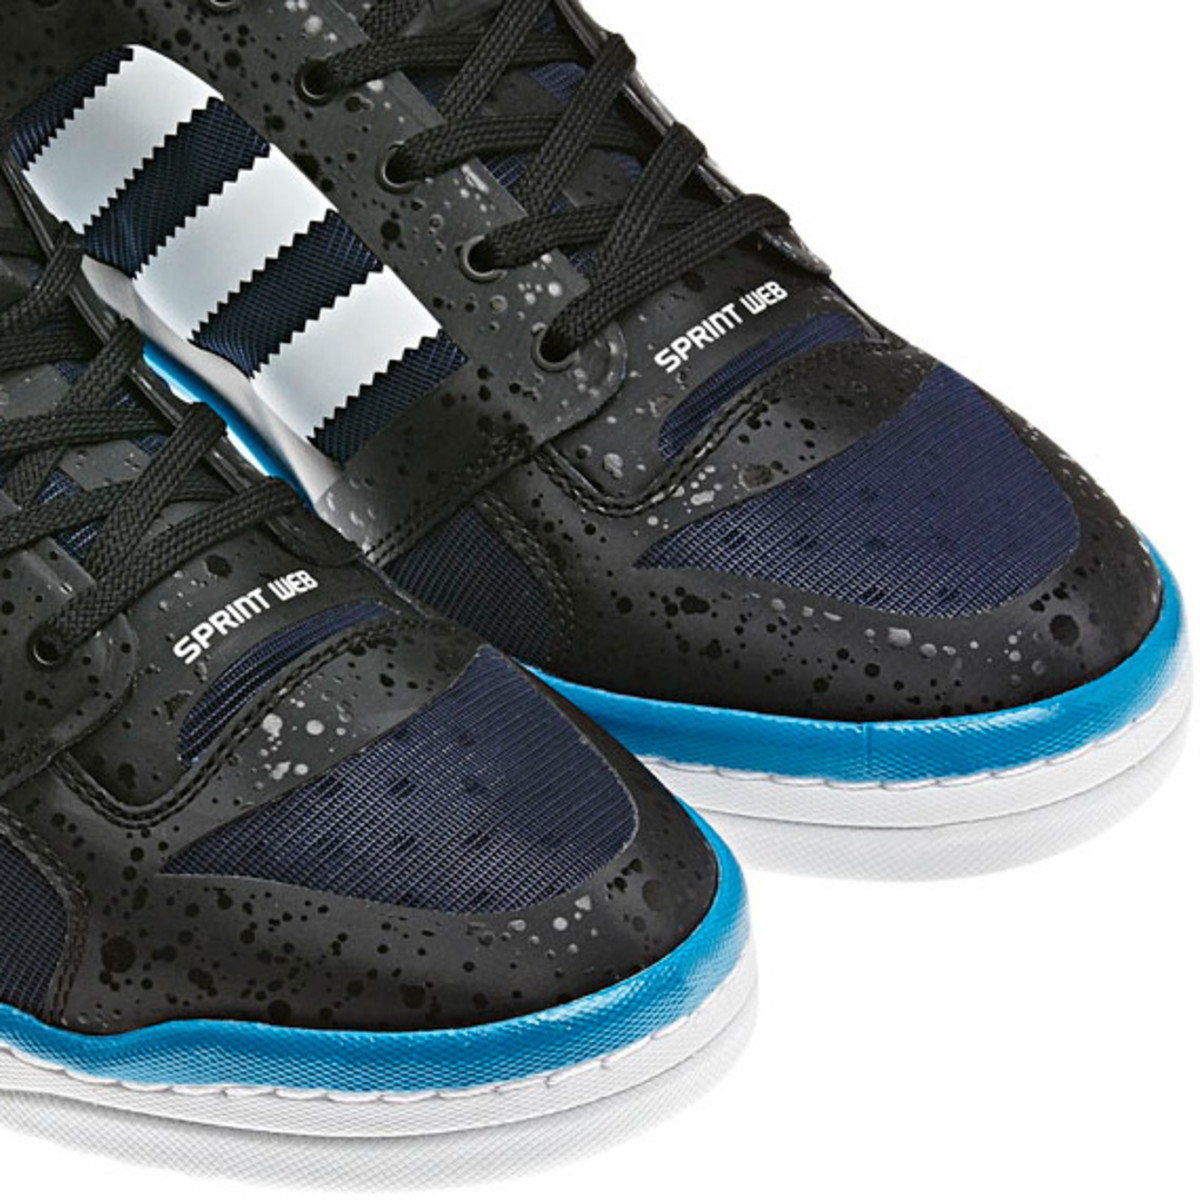 adidas-originals-forum-crazy-light-g51708-04